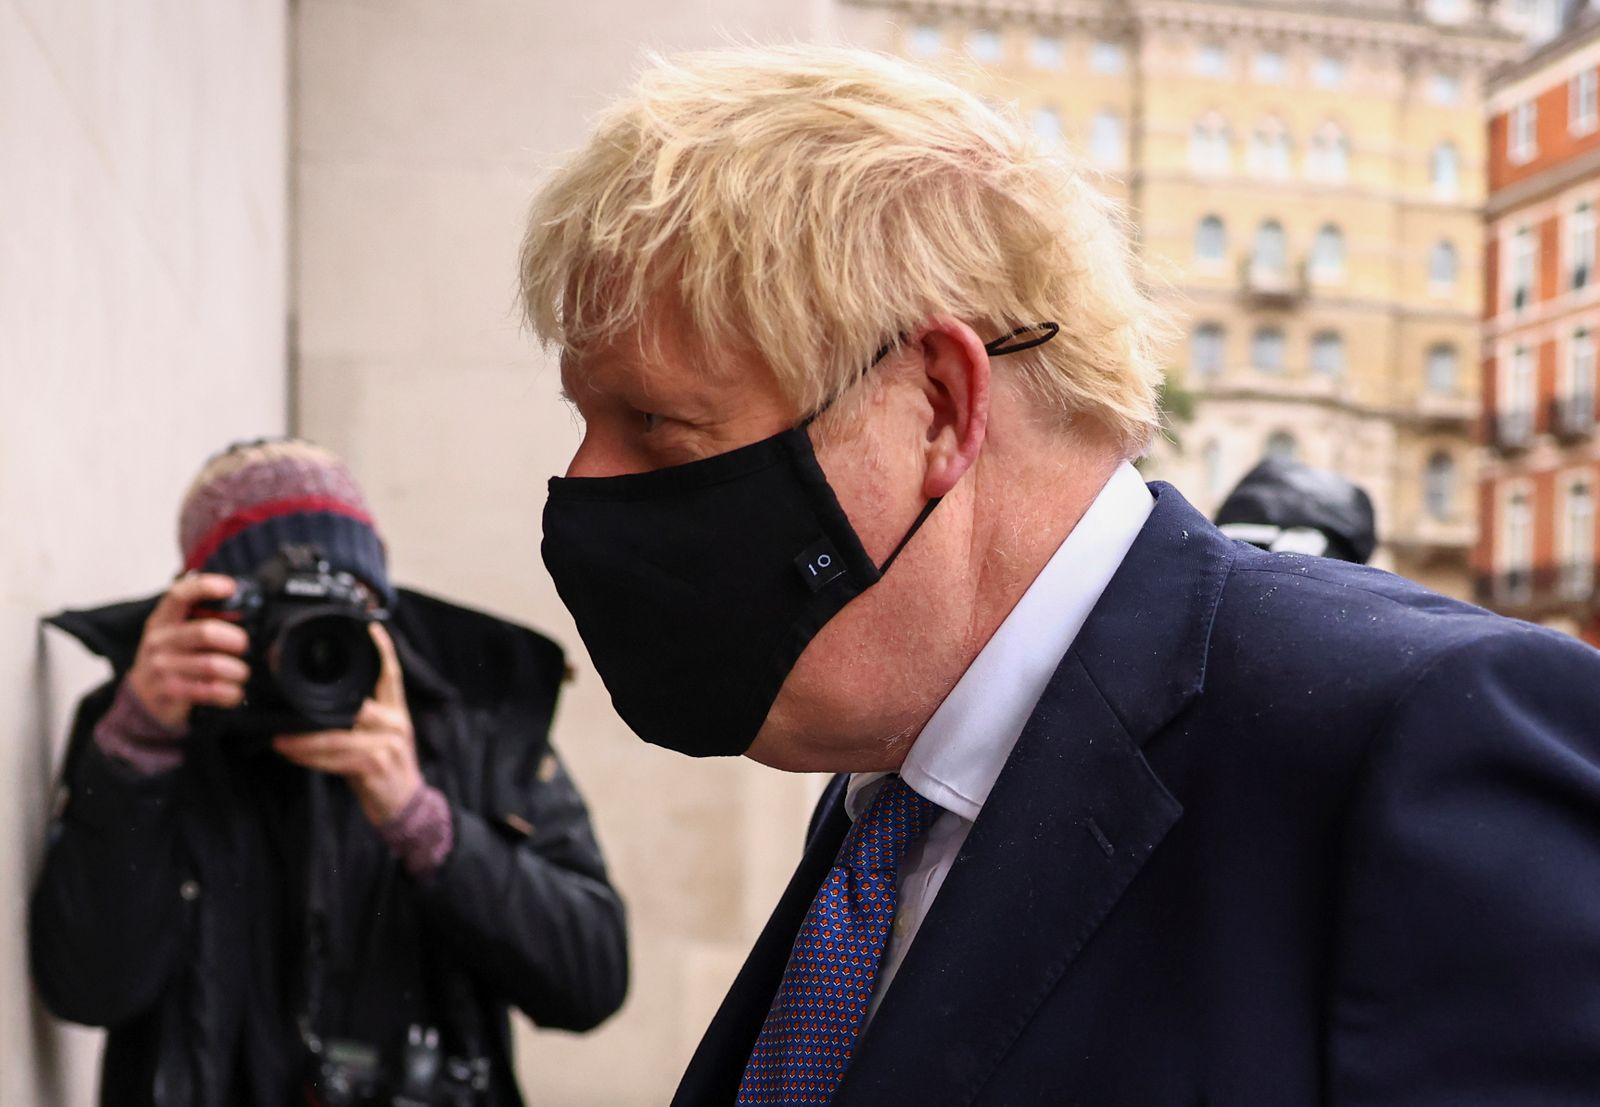 British PM Johnson is seen outside BBC headquarters in London